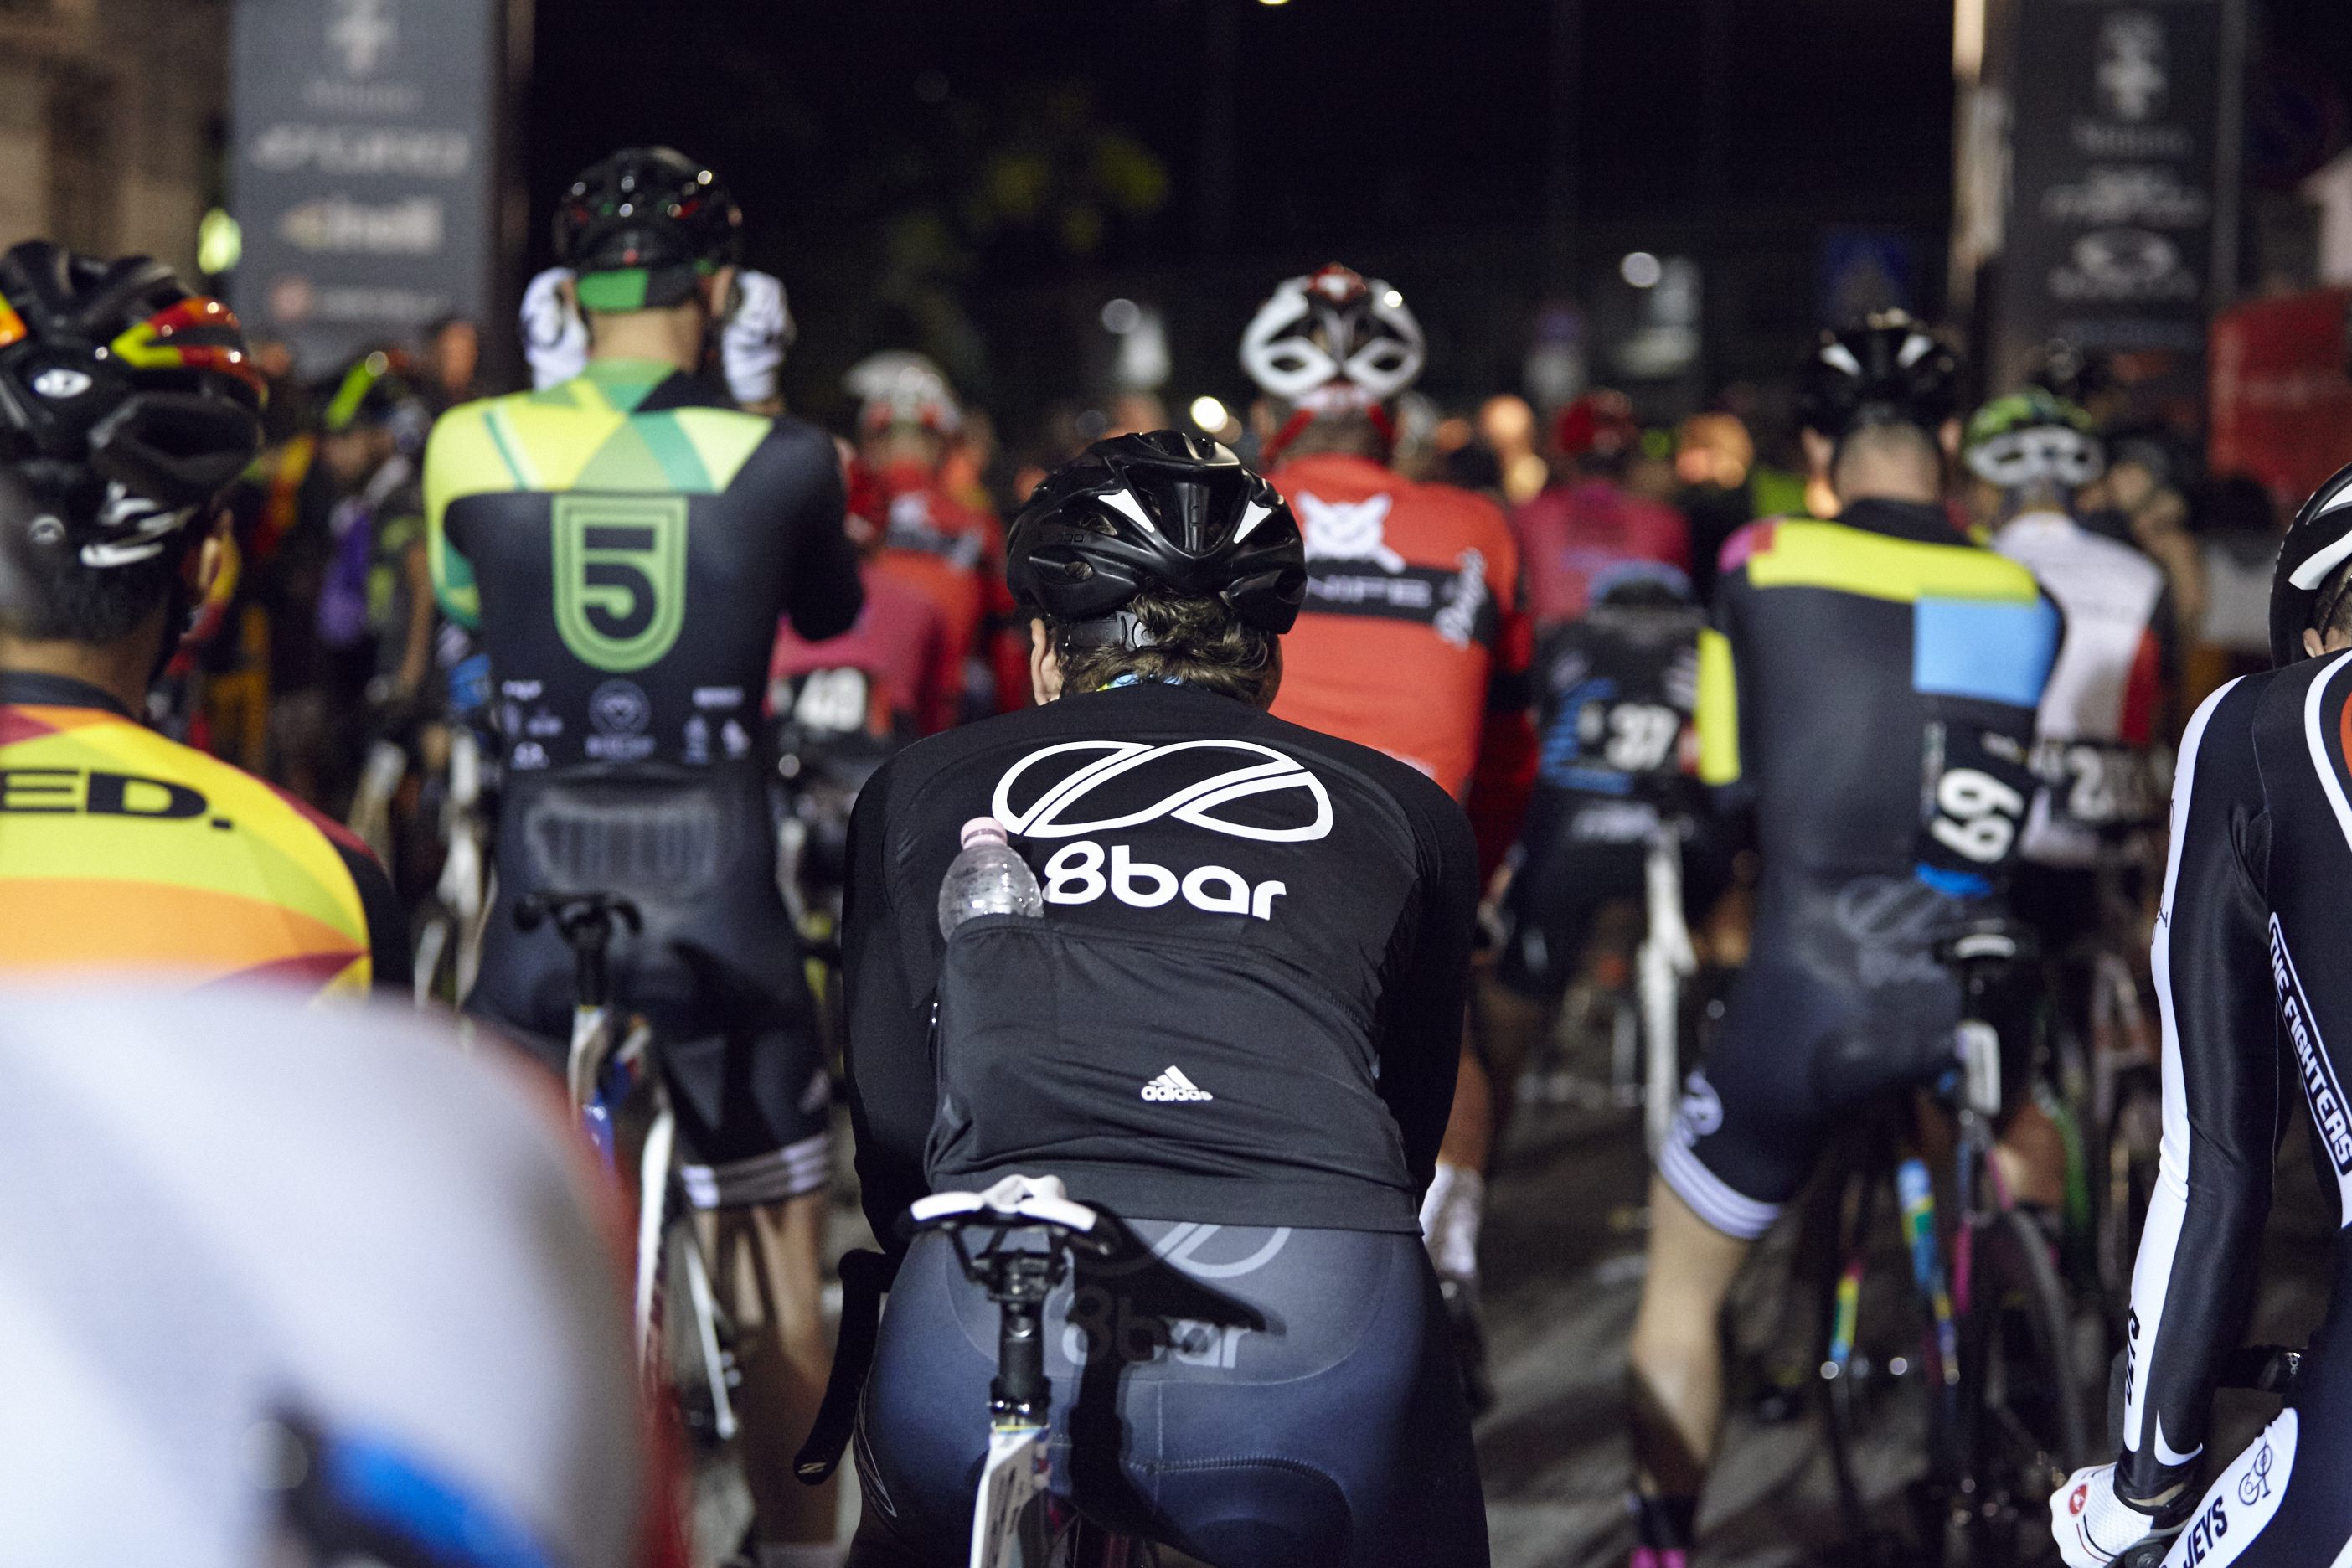 8bar team red hook crit milan 8690 - 8bar at Red Hook Criterium Milan 2015